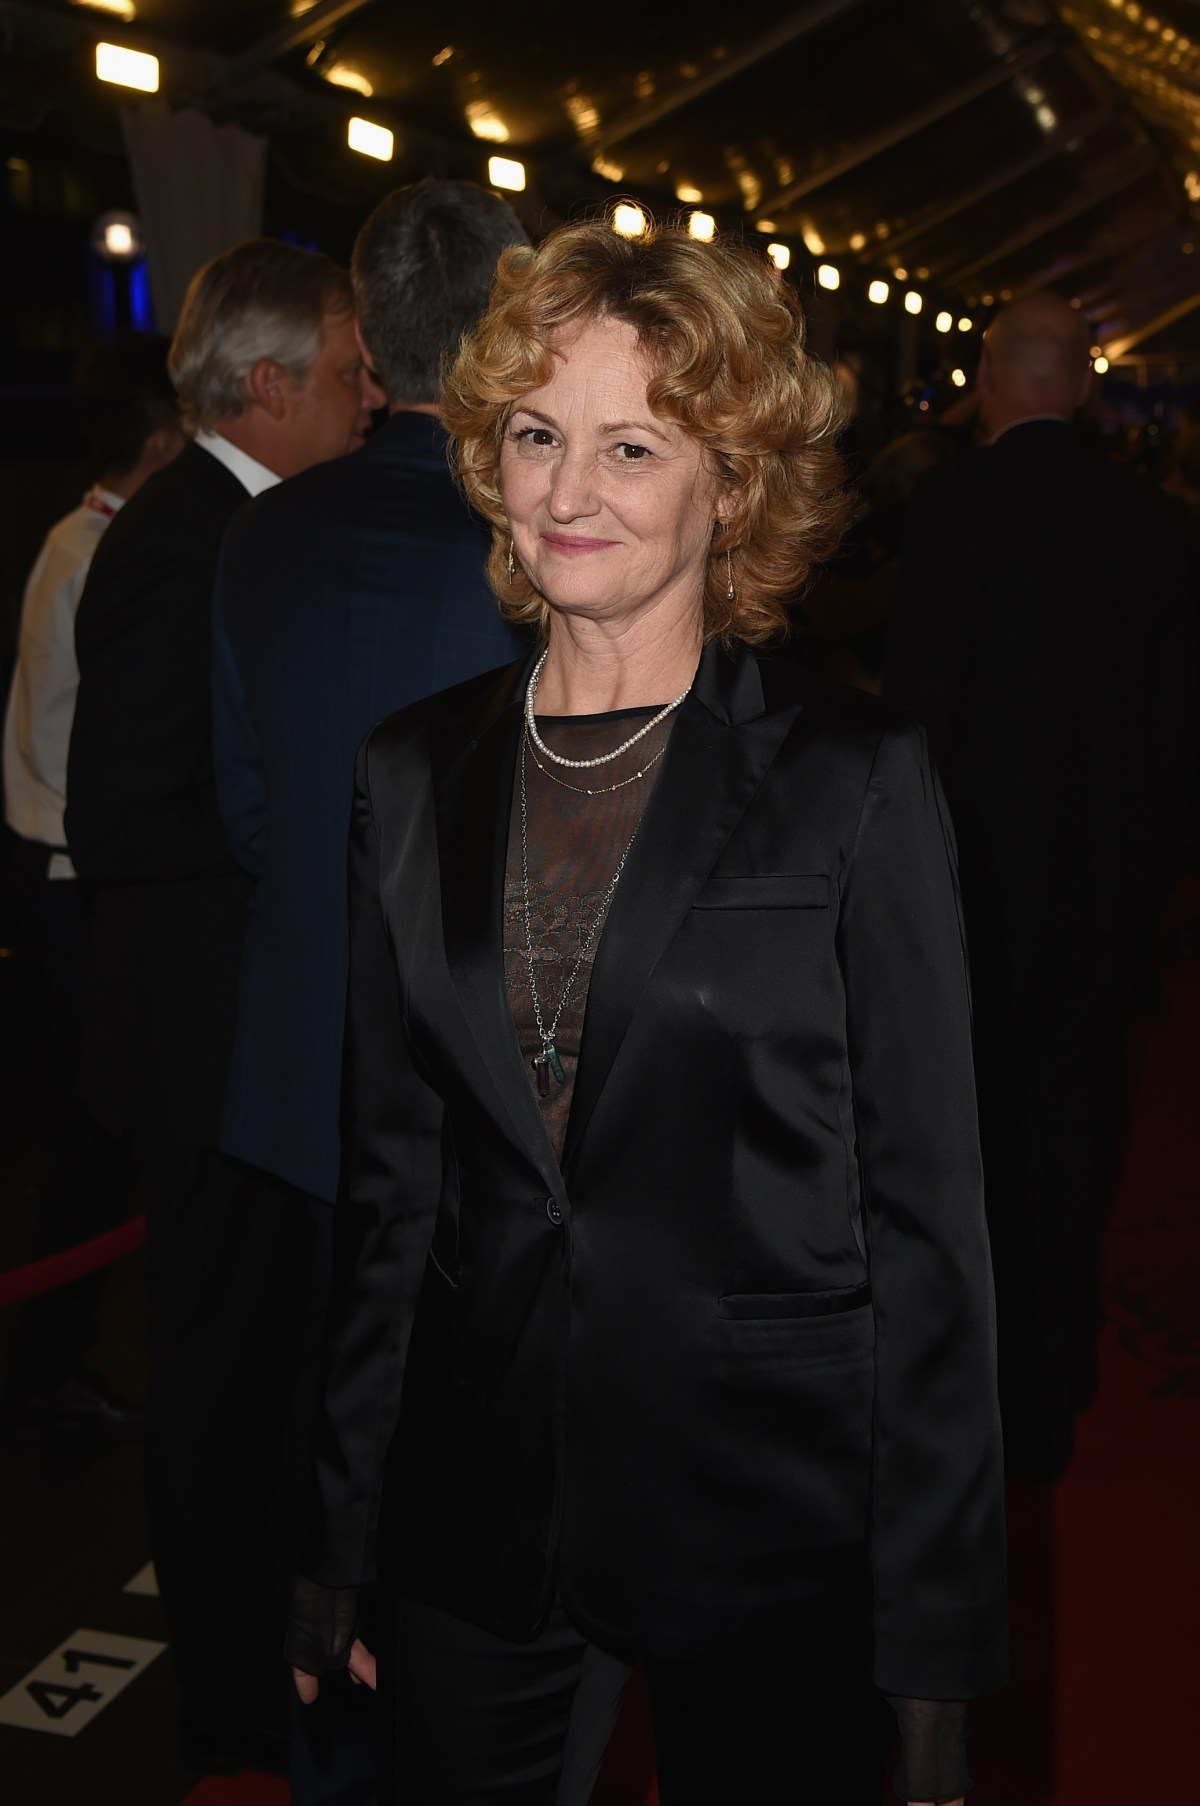 """TORONTO, ON - SEPTEMBER 09:  Actress Melissa Leo attends the """"Snowden"""" premiere during the 2016 Toronto International Film Festival at Roy Thomson Hall on September 9, 2016 in Toronto, Canada.  (Photo by Kevin Winter/Getty Images)"""